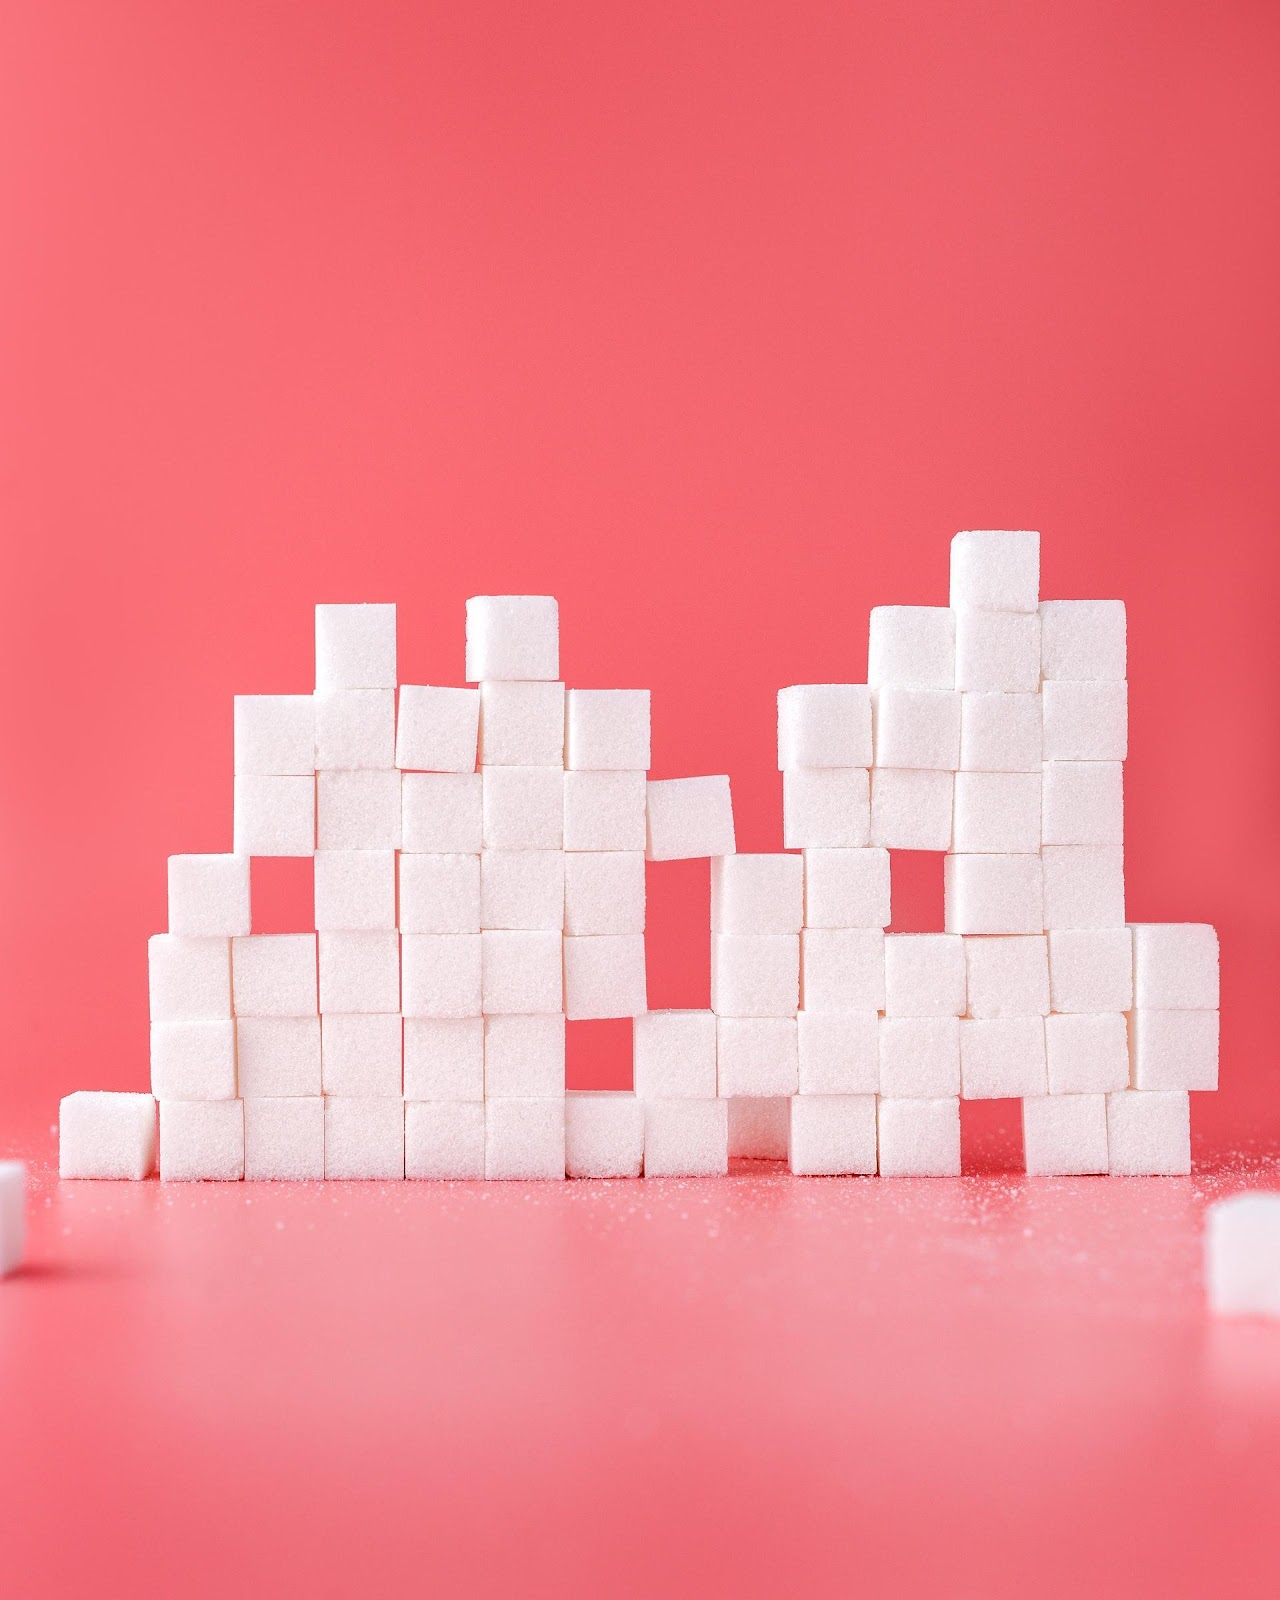 Stacked Sugar Cubes on Pink Background